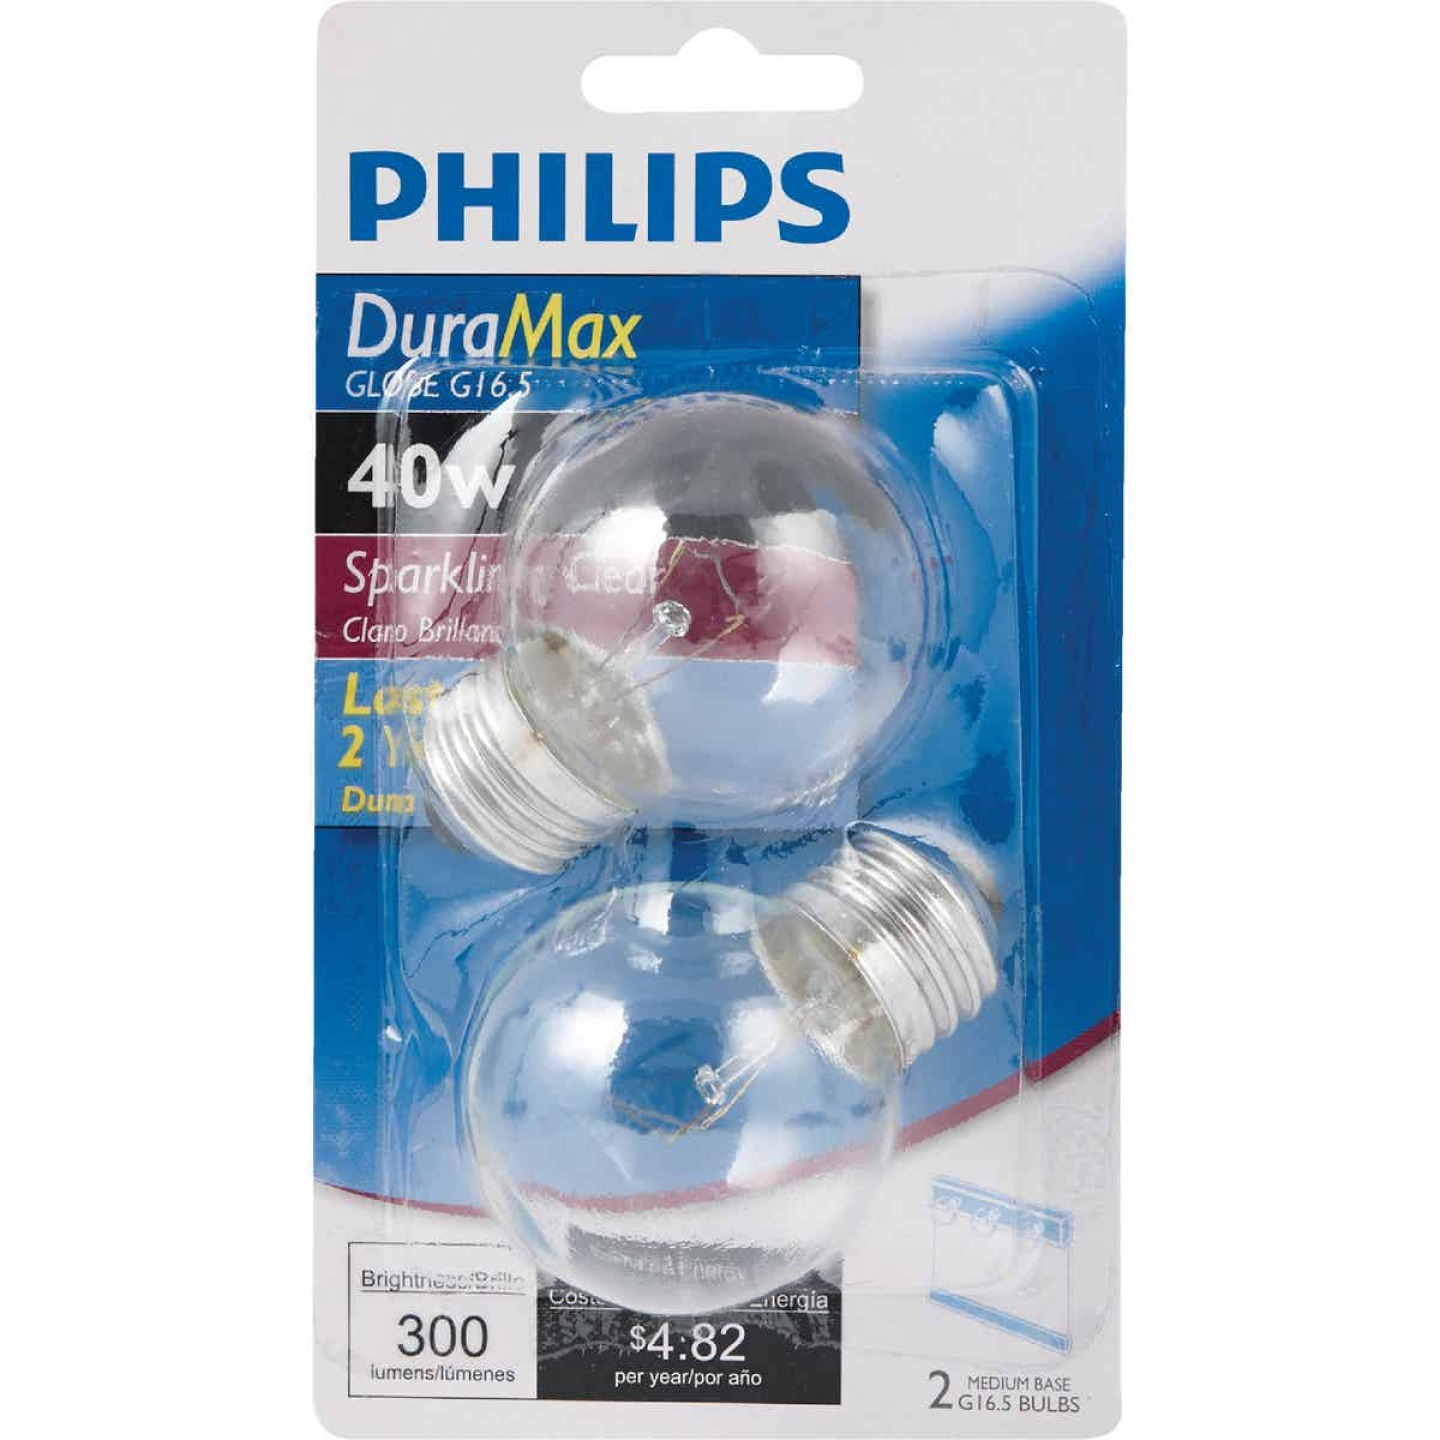 Philips DuraMax 40W Clear Medium G16.5 Incandescent Globe Light Bulb (2-Pack) Image 2